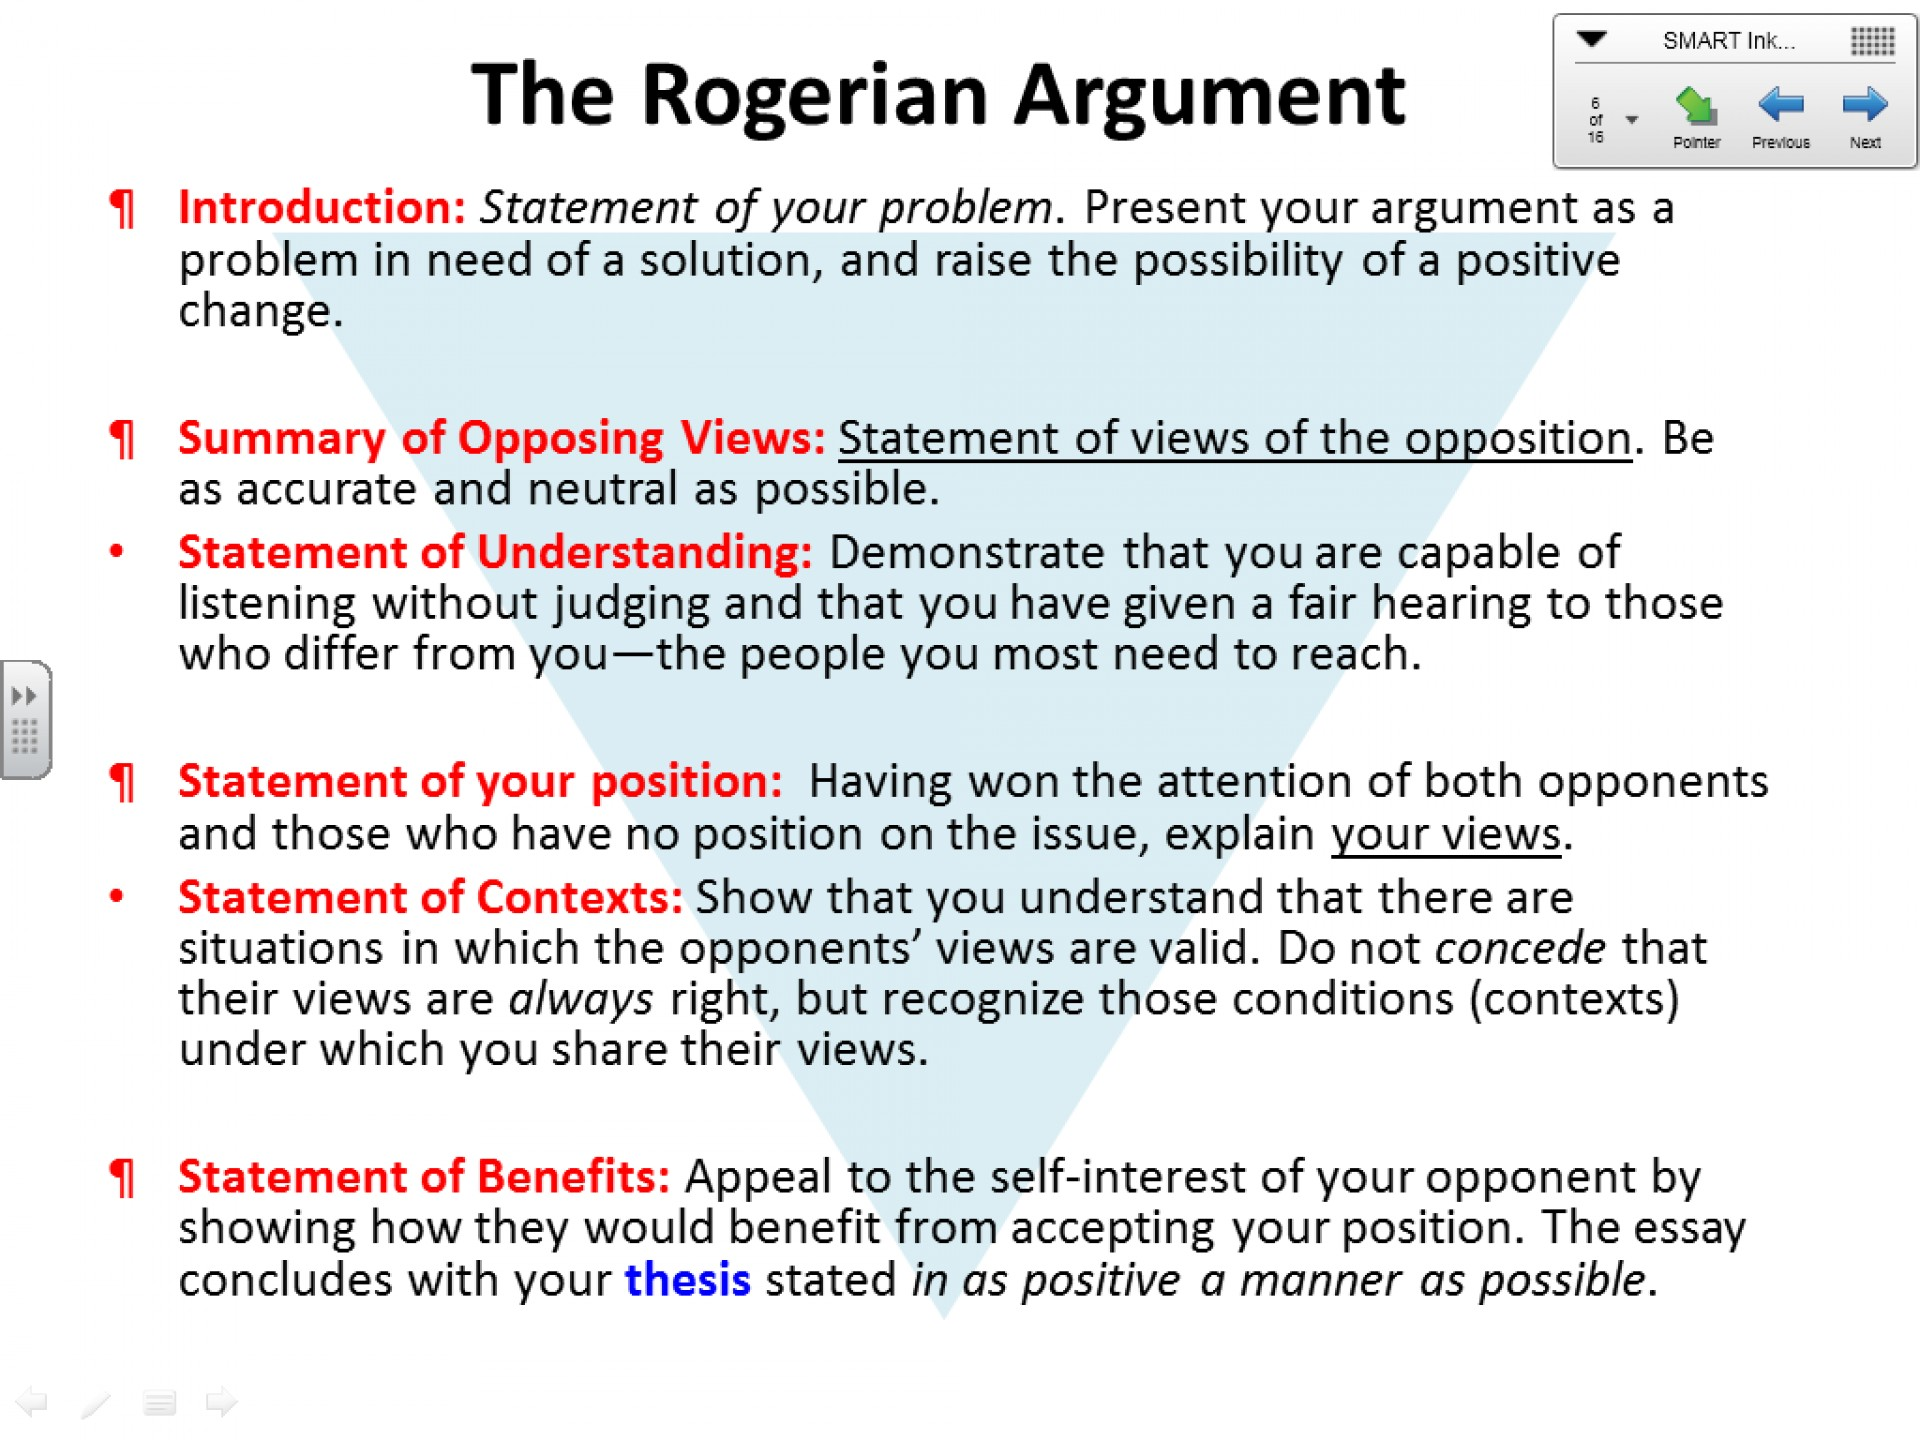 005 Rogerian1 Rogerian Argument Essay Fascinating Example Topics Death Penalty On Abortion 1920